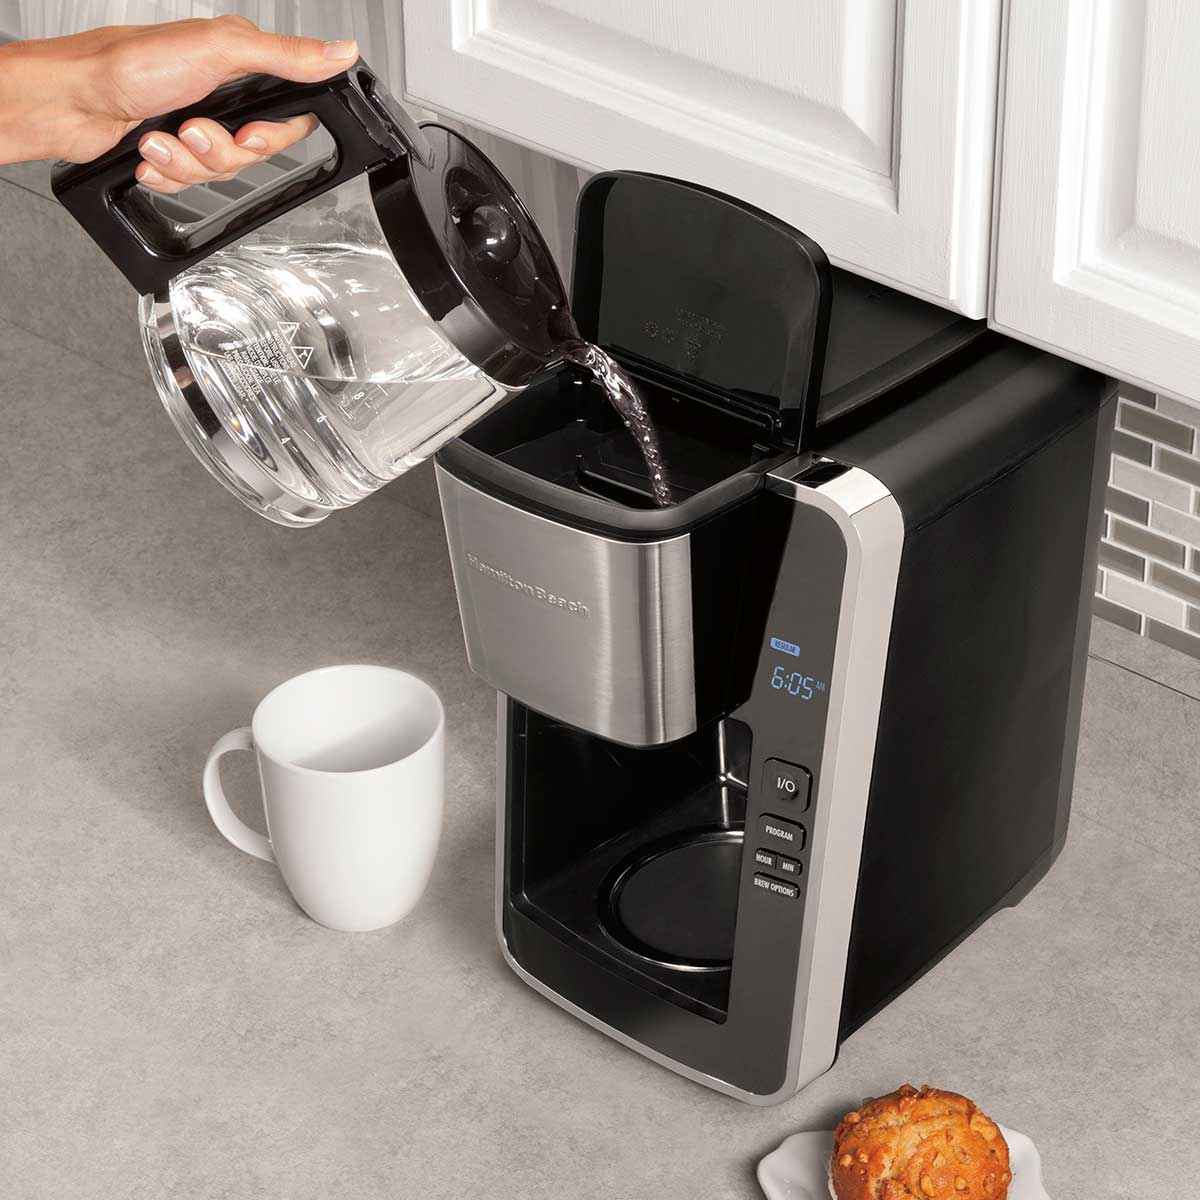 Enter for a Chance to Win a Hamilton Beach® Programmable Easy Access Deluxe Coffee Maker